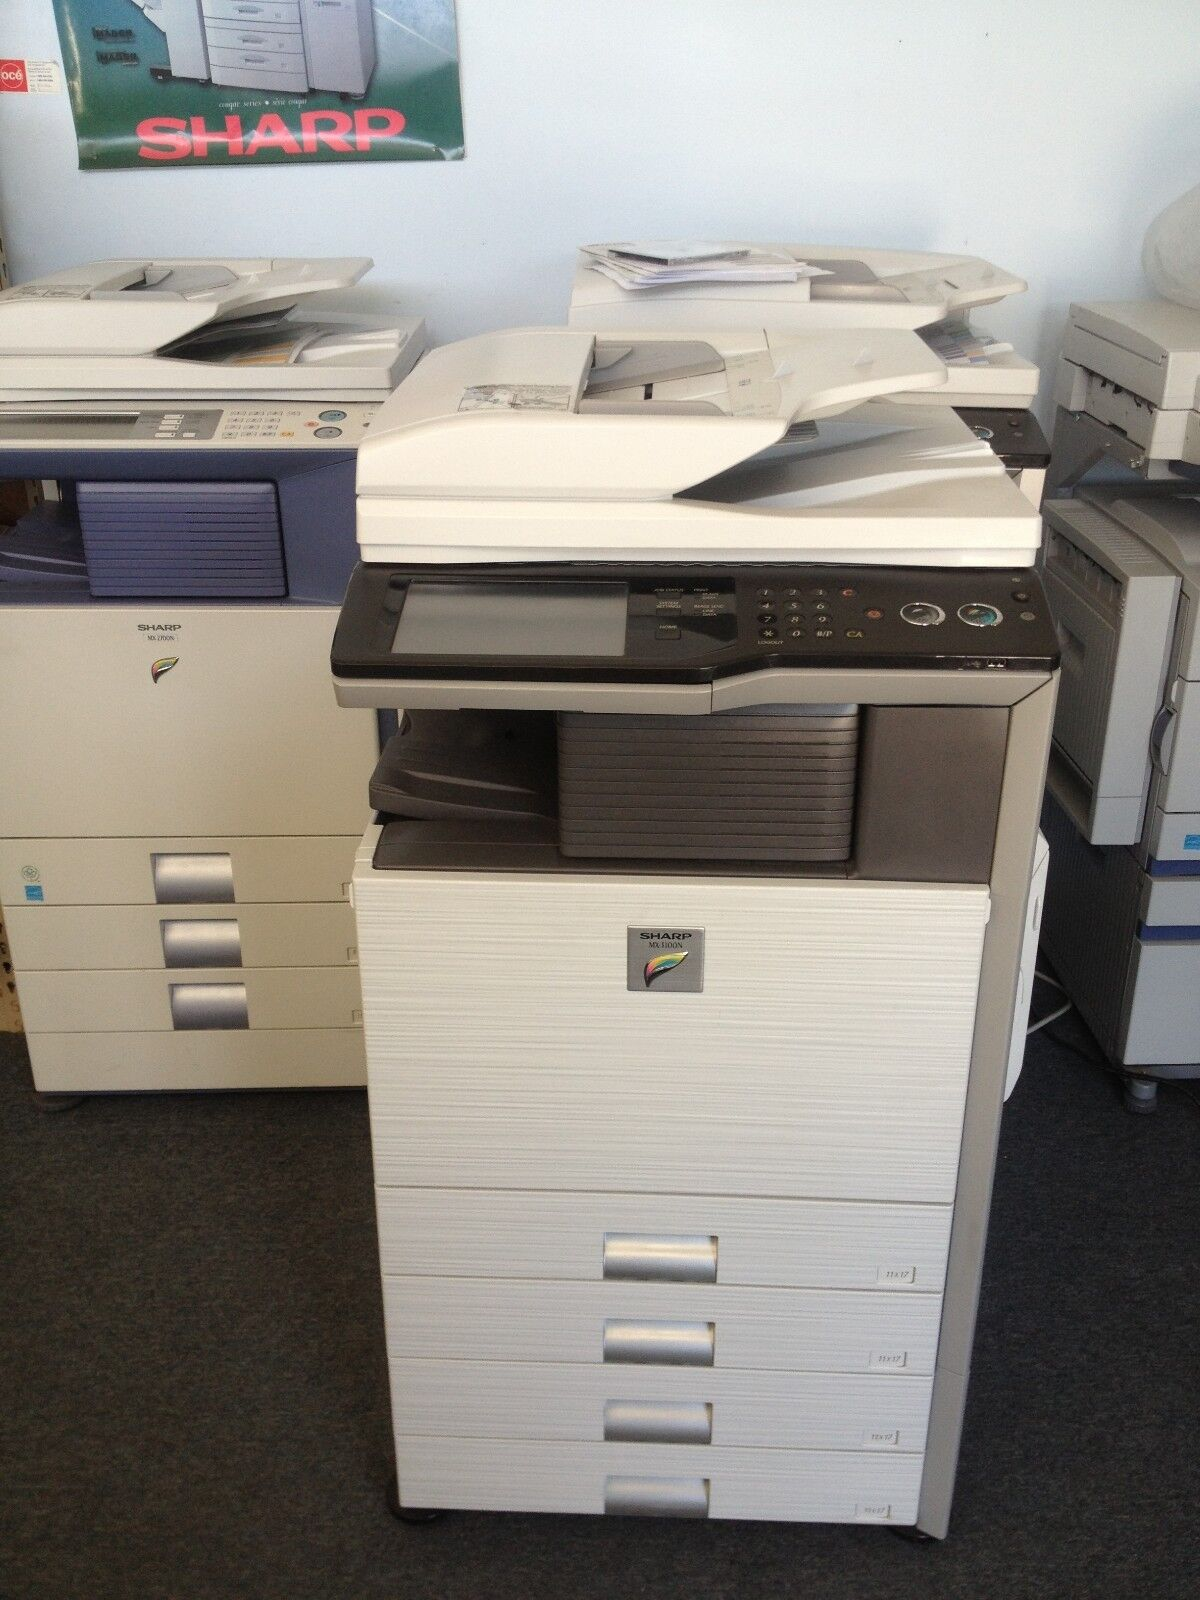 Details about Sharp MX-42N Showroom Cond Multifunction Color Copier  Network Scan Fax Printer